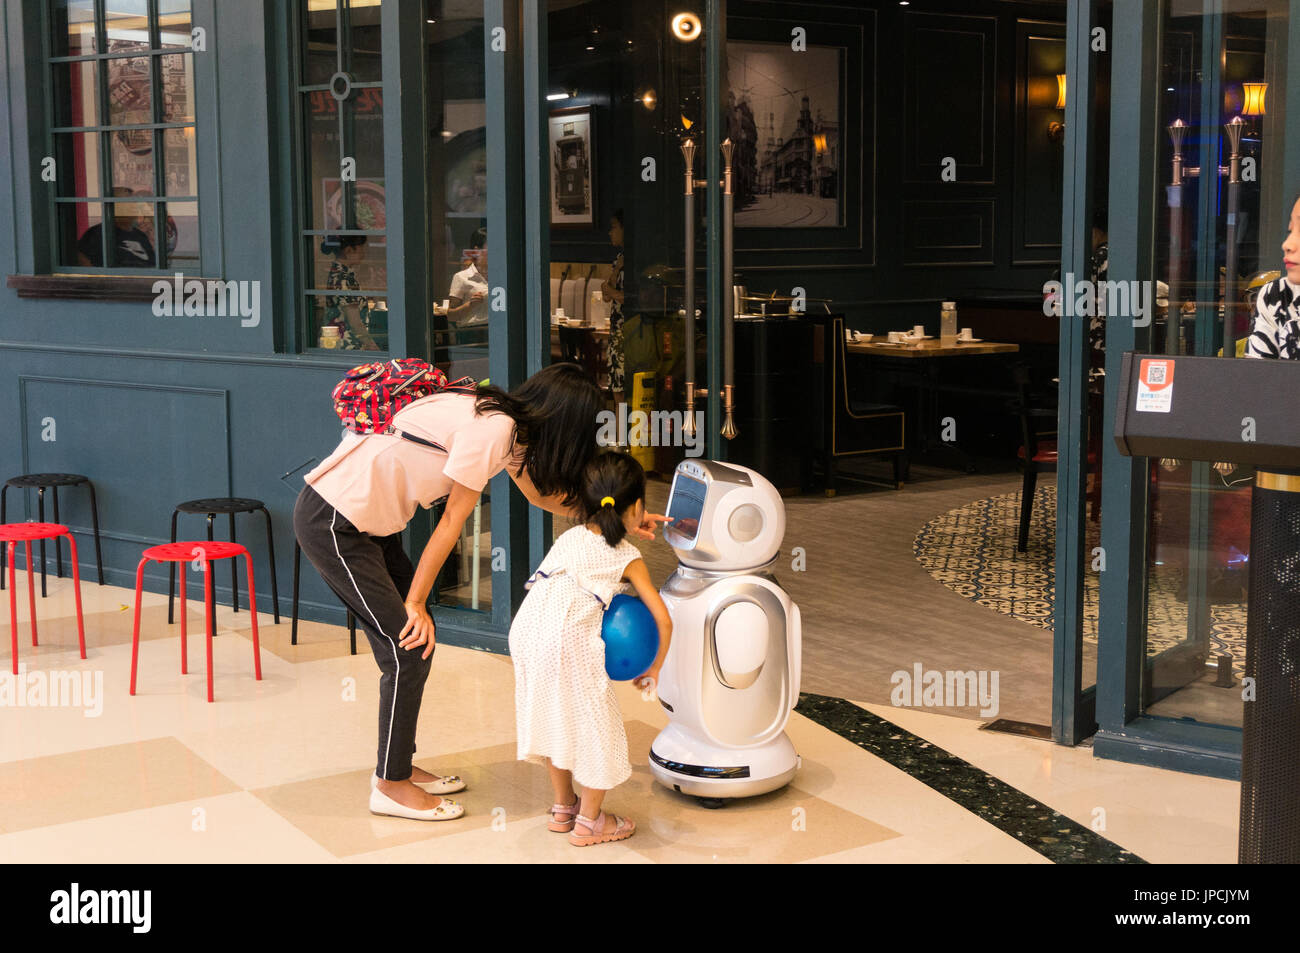 Mother and young girl interacting with restaurant robot in Shenzhen, China - Stock Image